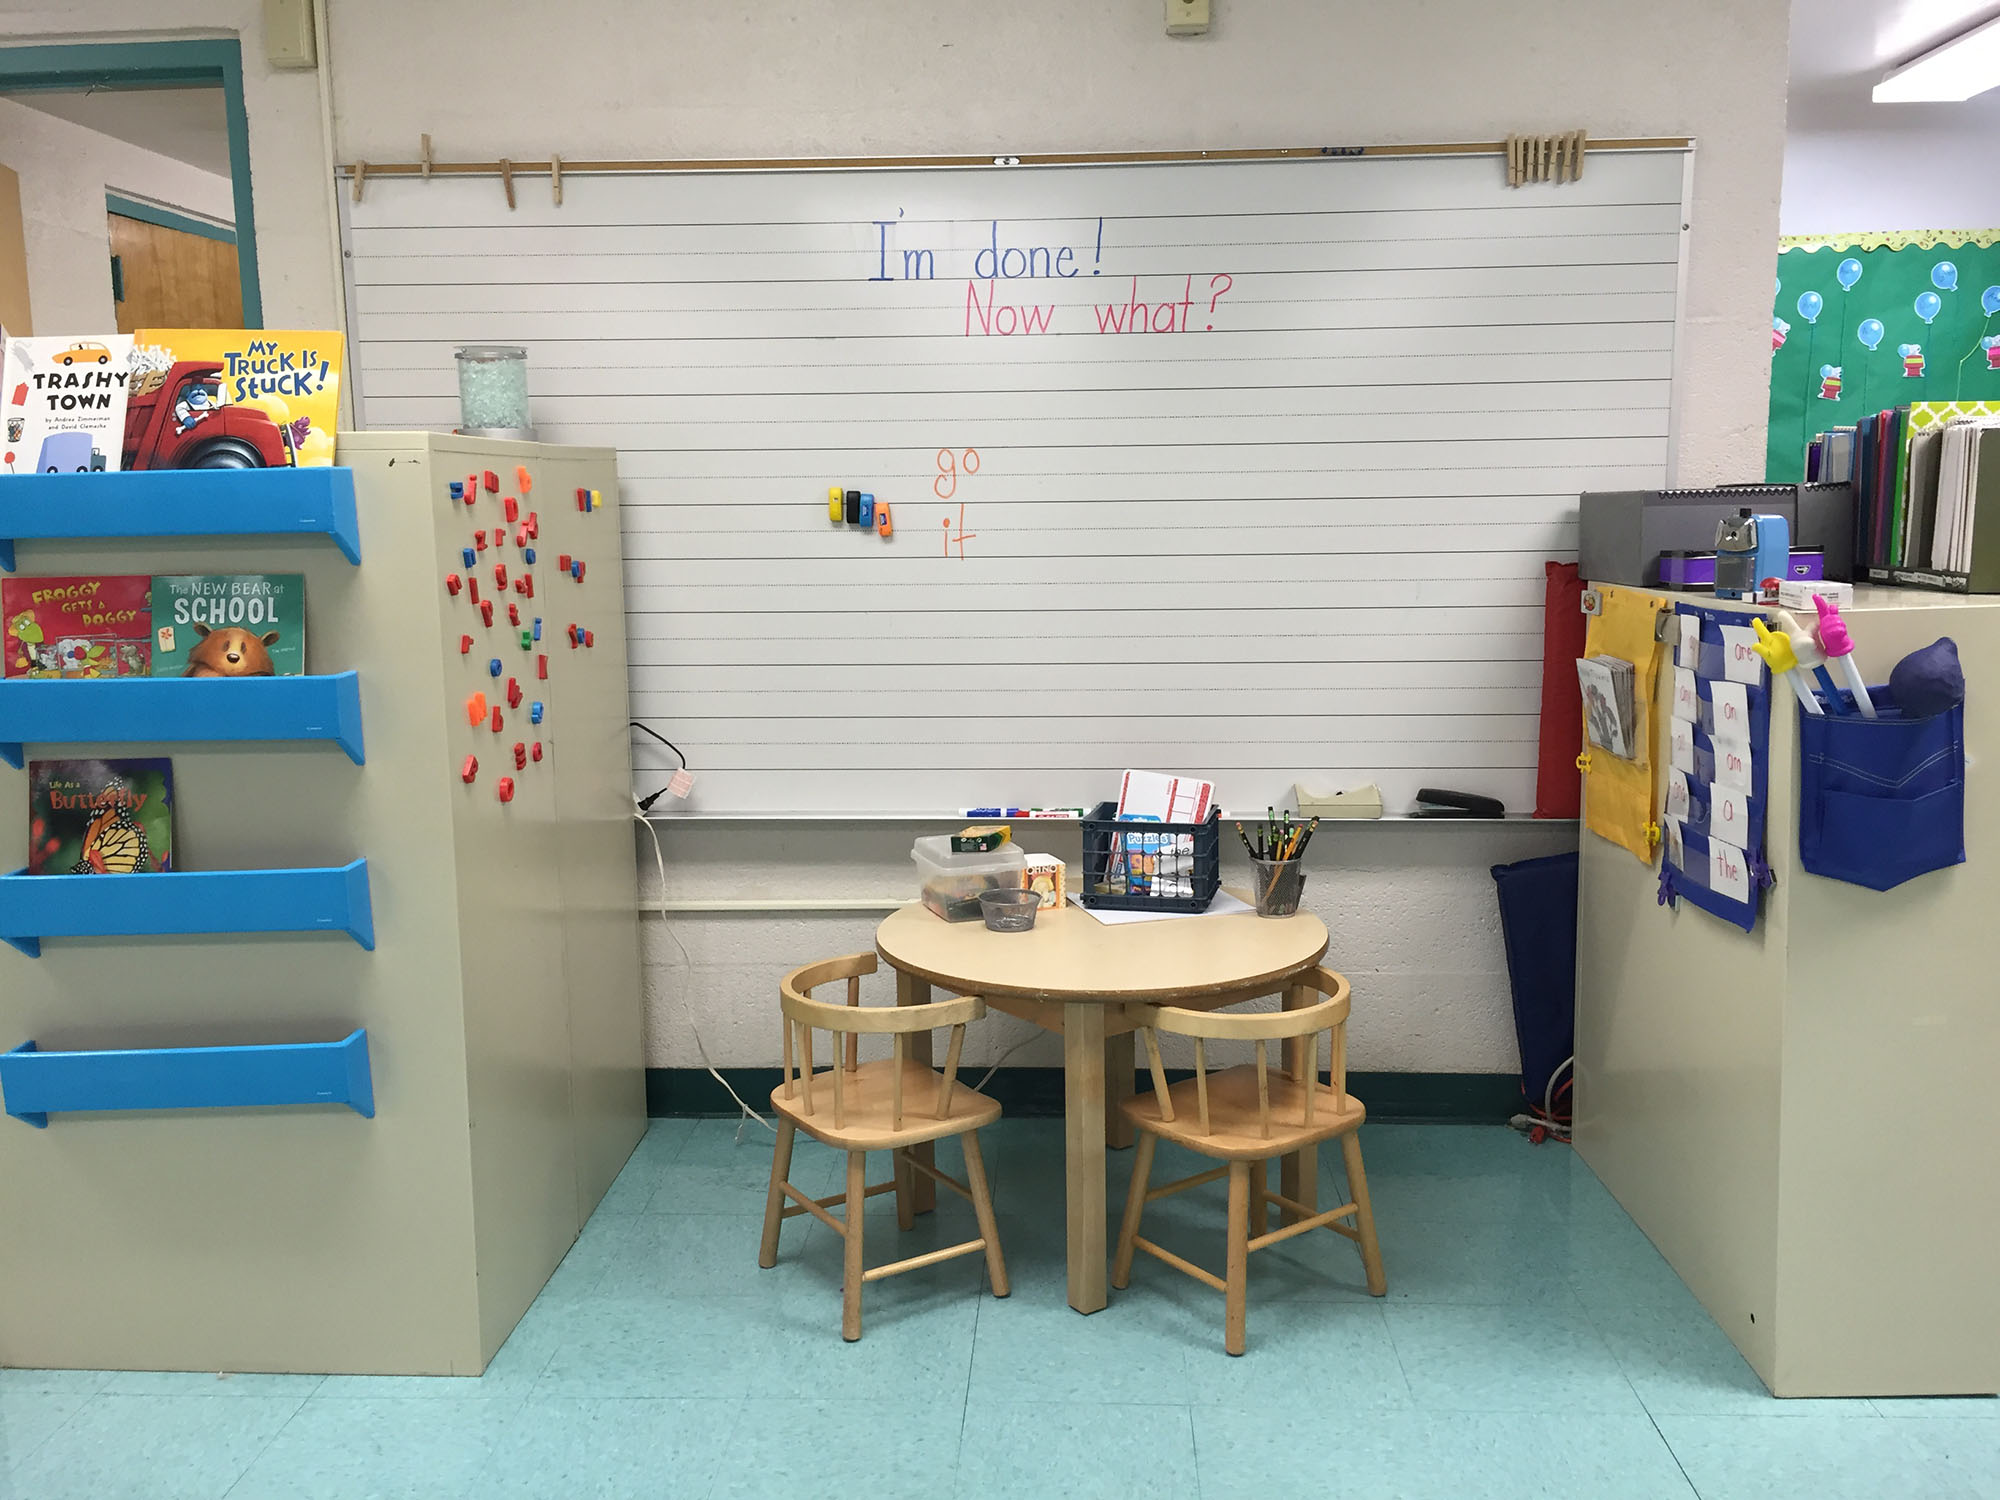 A center for unstructured learning, with books, supplies, a table, and a whiteboard